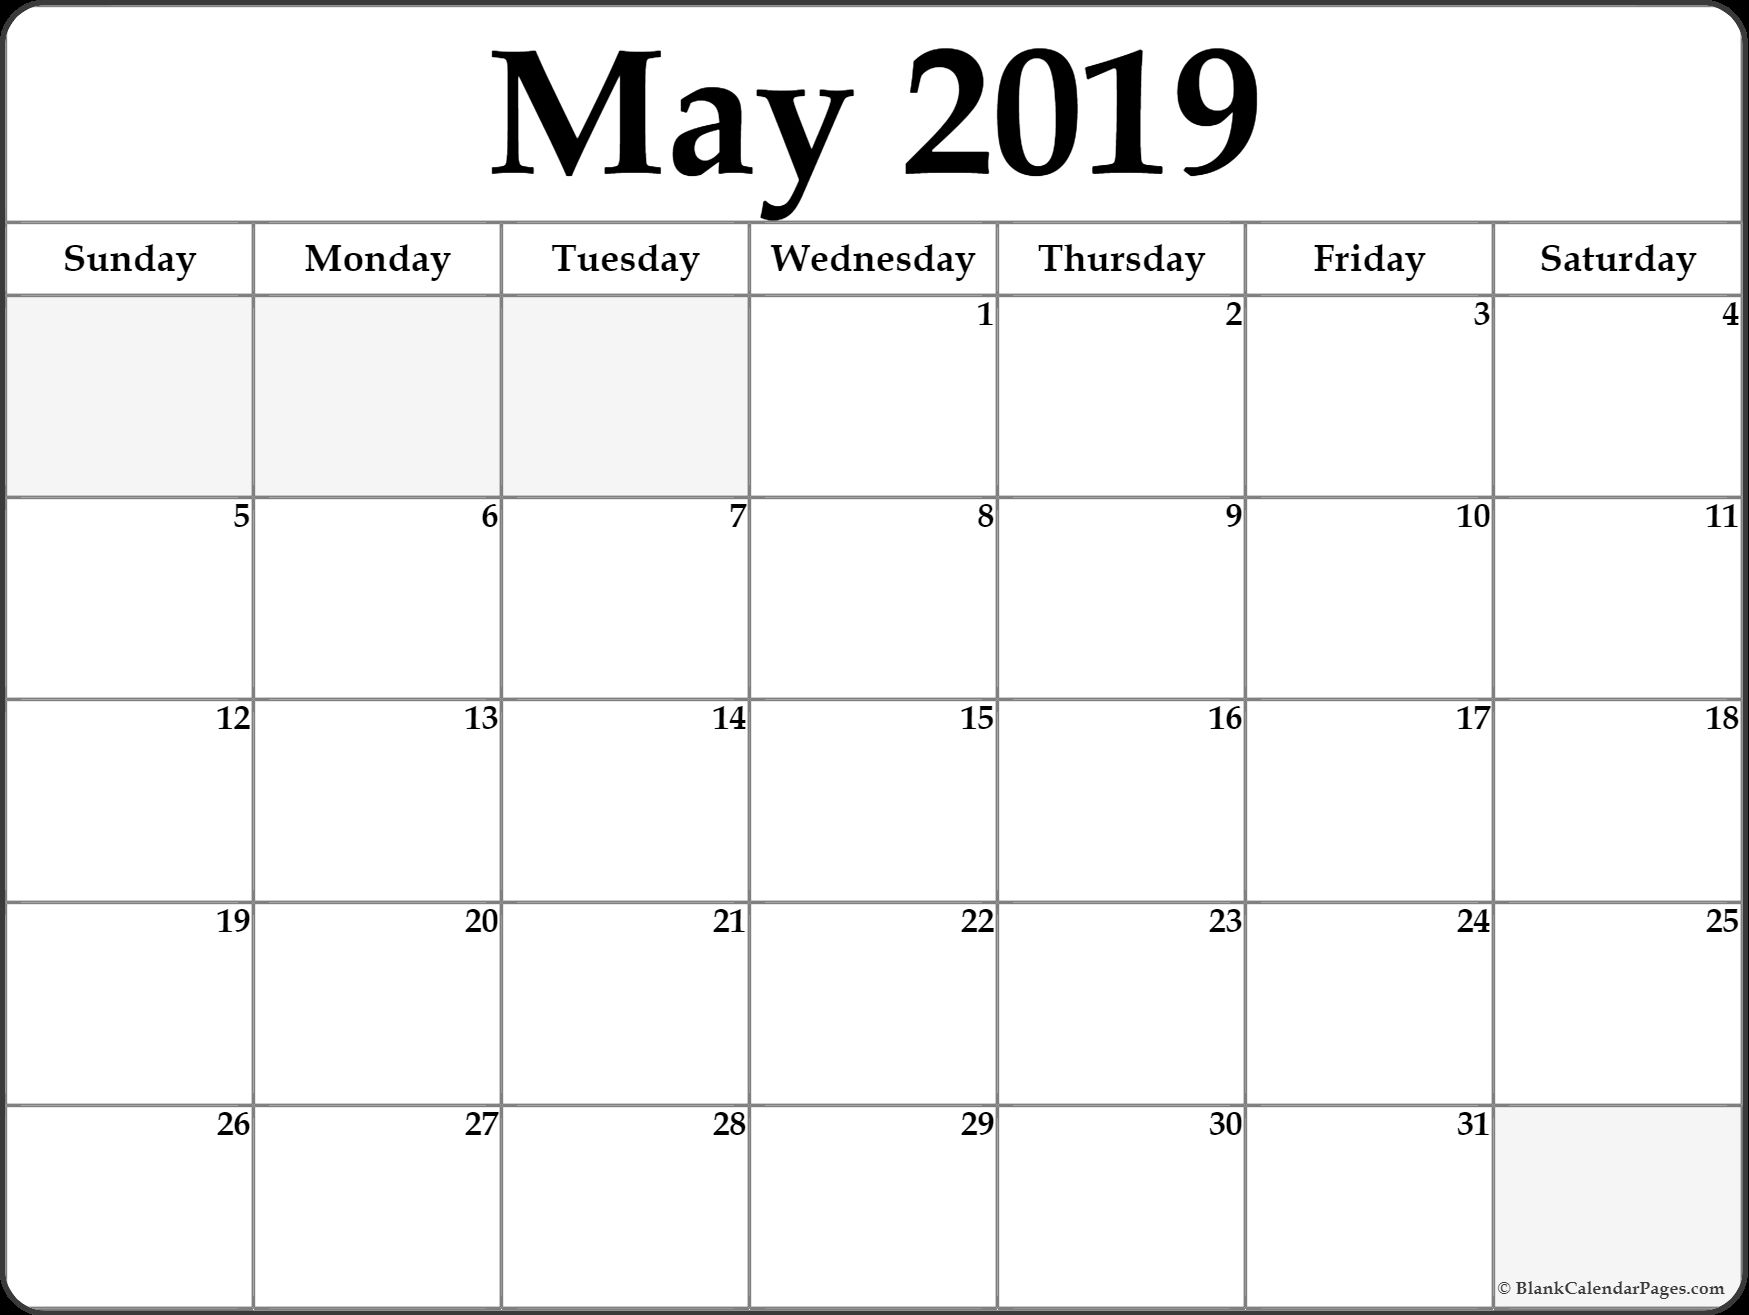 May 2019 Calendar Template Word